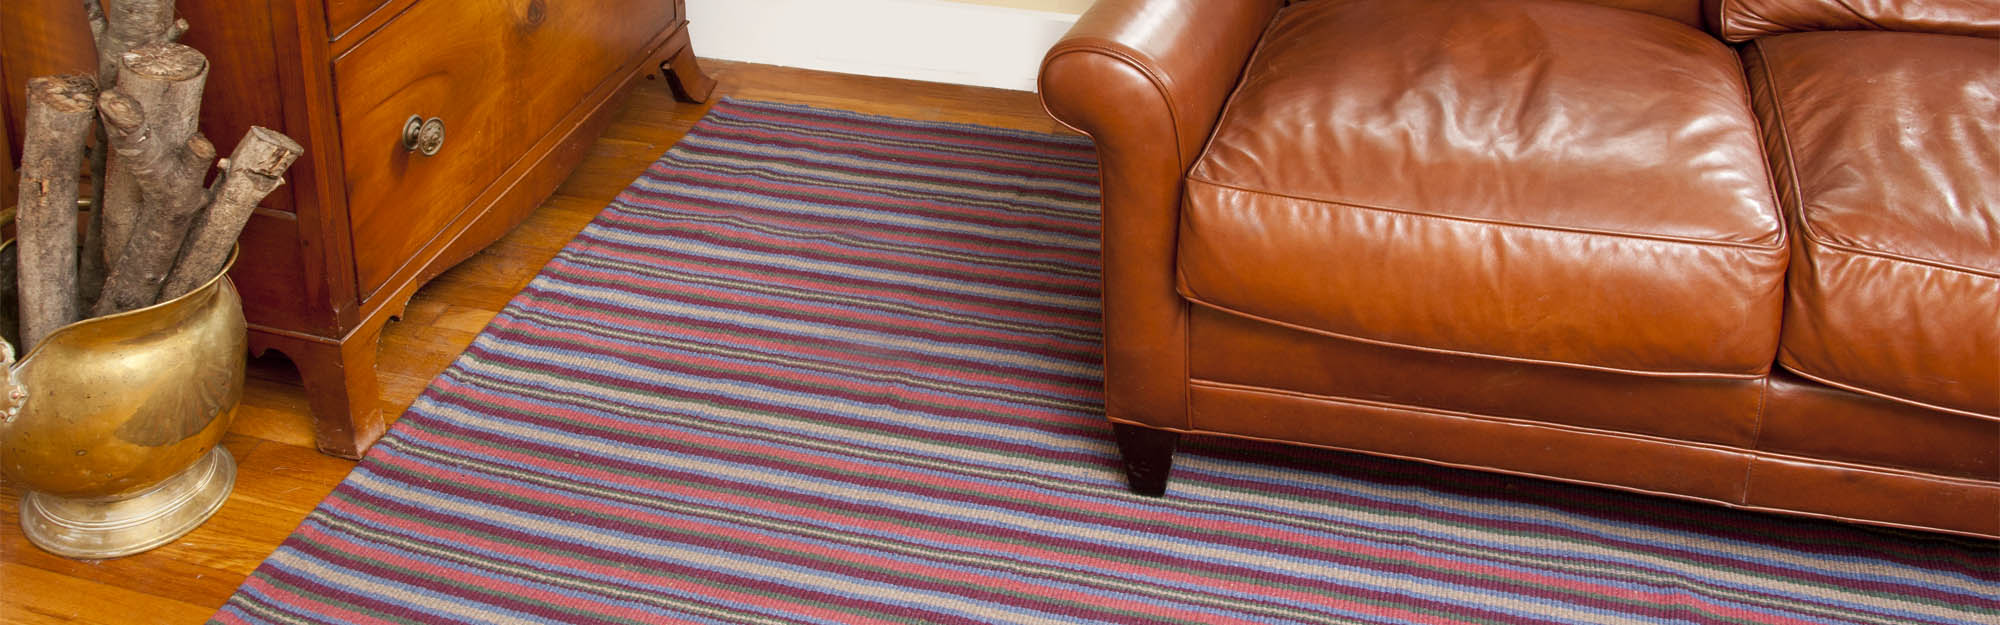 Dalton Stripe Eco Cotton Rug under leather couch